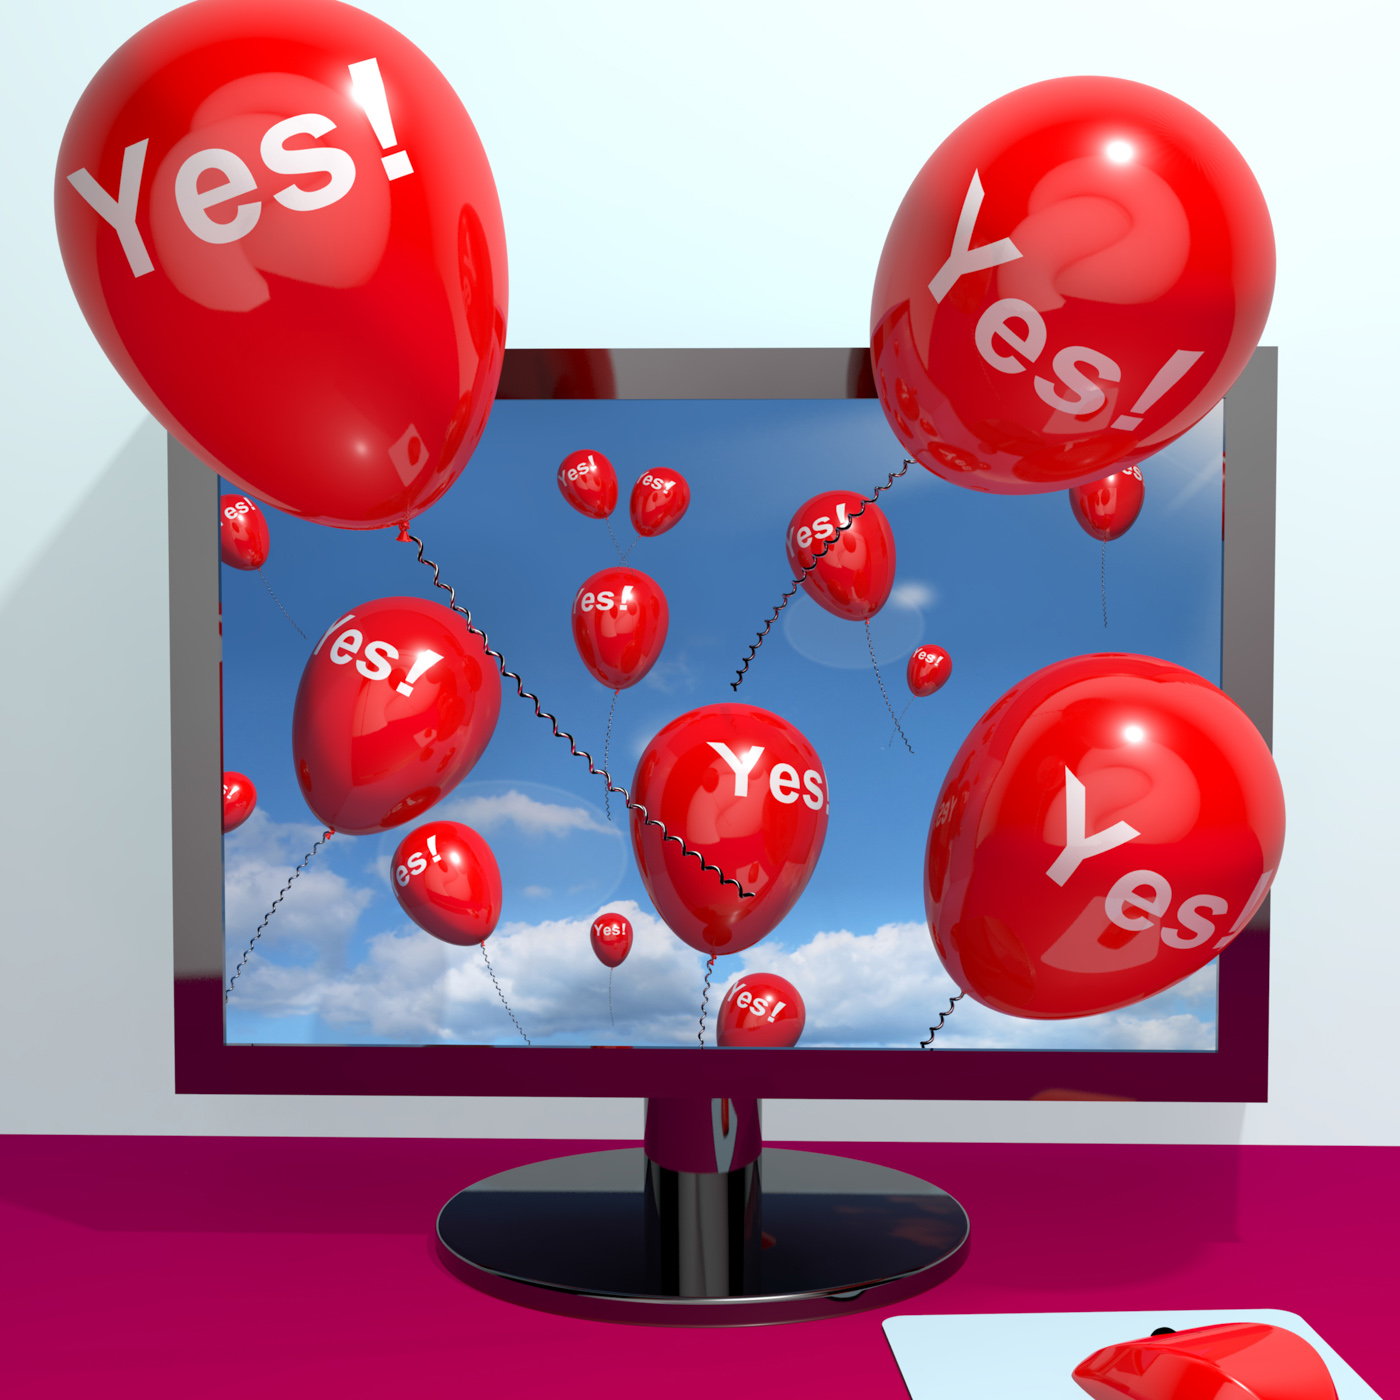 Yes balloons from a computer showing approval and support message onli photo